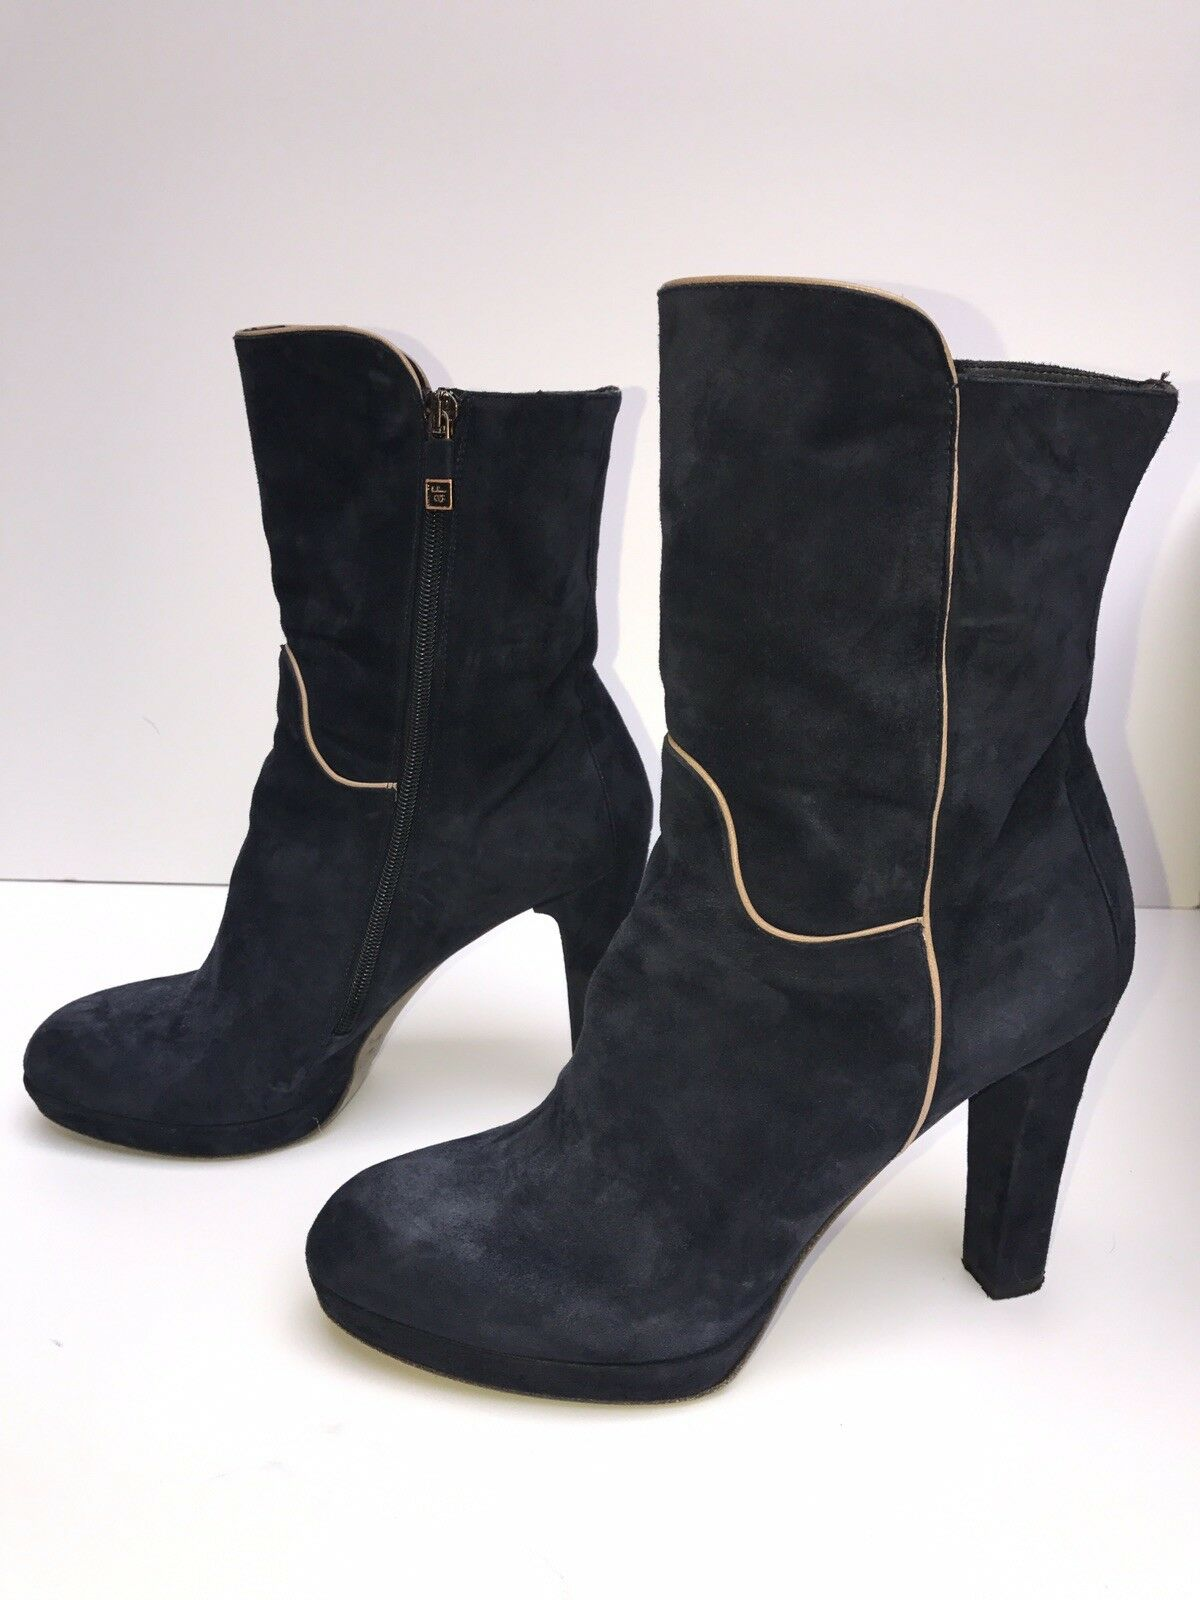 Previously Owned (barely) Alberto Fermani FE9246 FE9246 FE9246 bluee Suede Boot – WORN ONCE - S 96a2ed